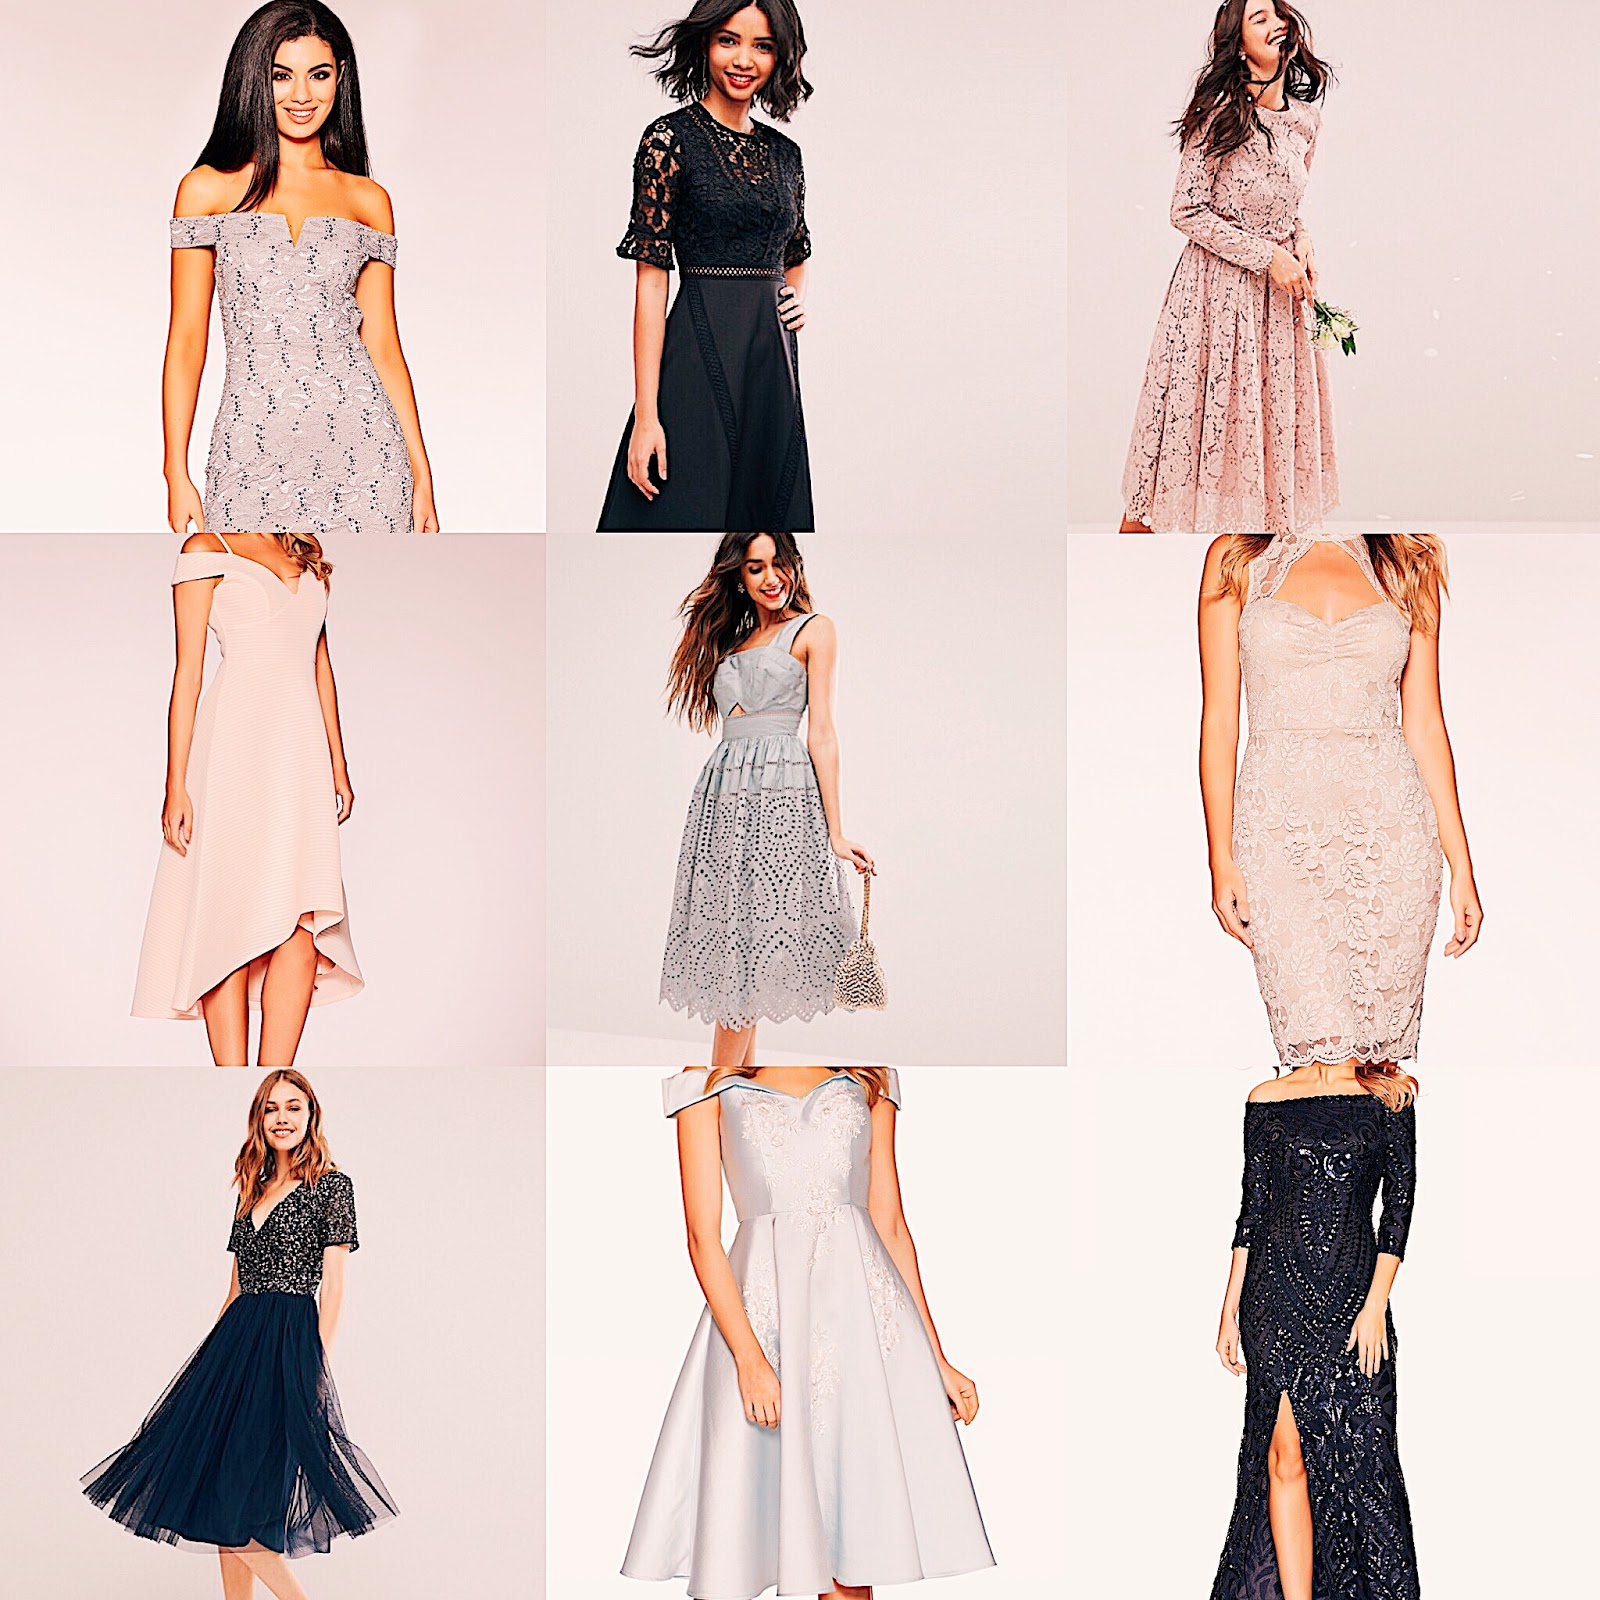 asos dress, quiz clothing dress, occasion wear dresses, occasion wear shopping tips, factors to consider when shopping for occasion wear